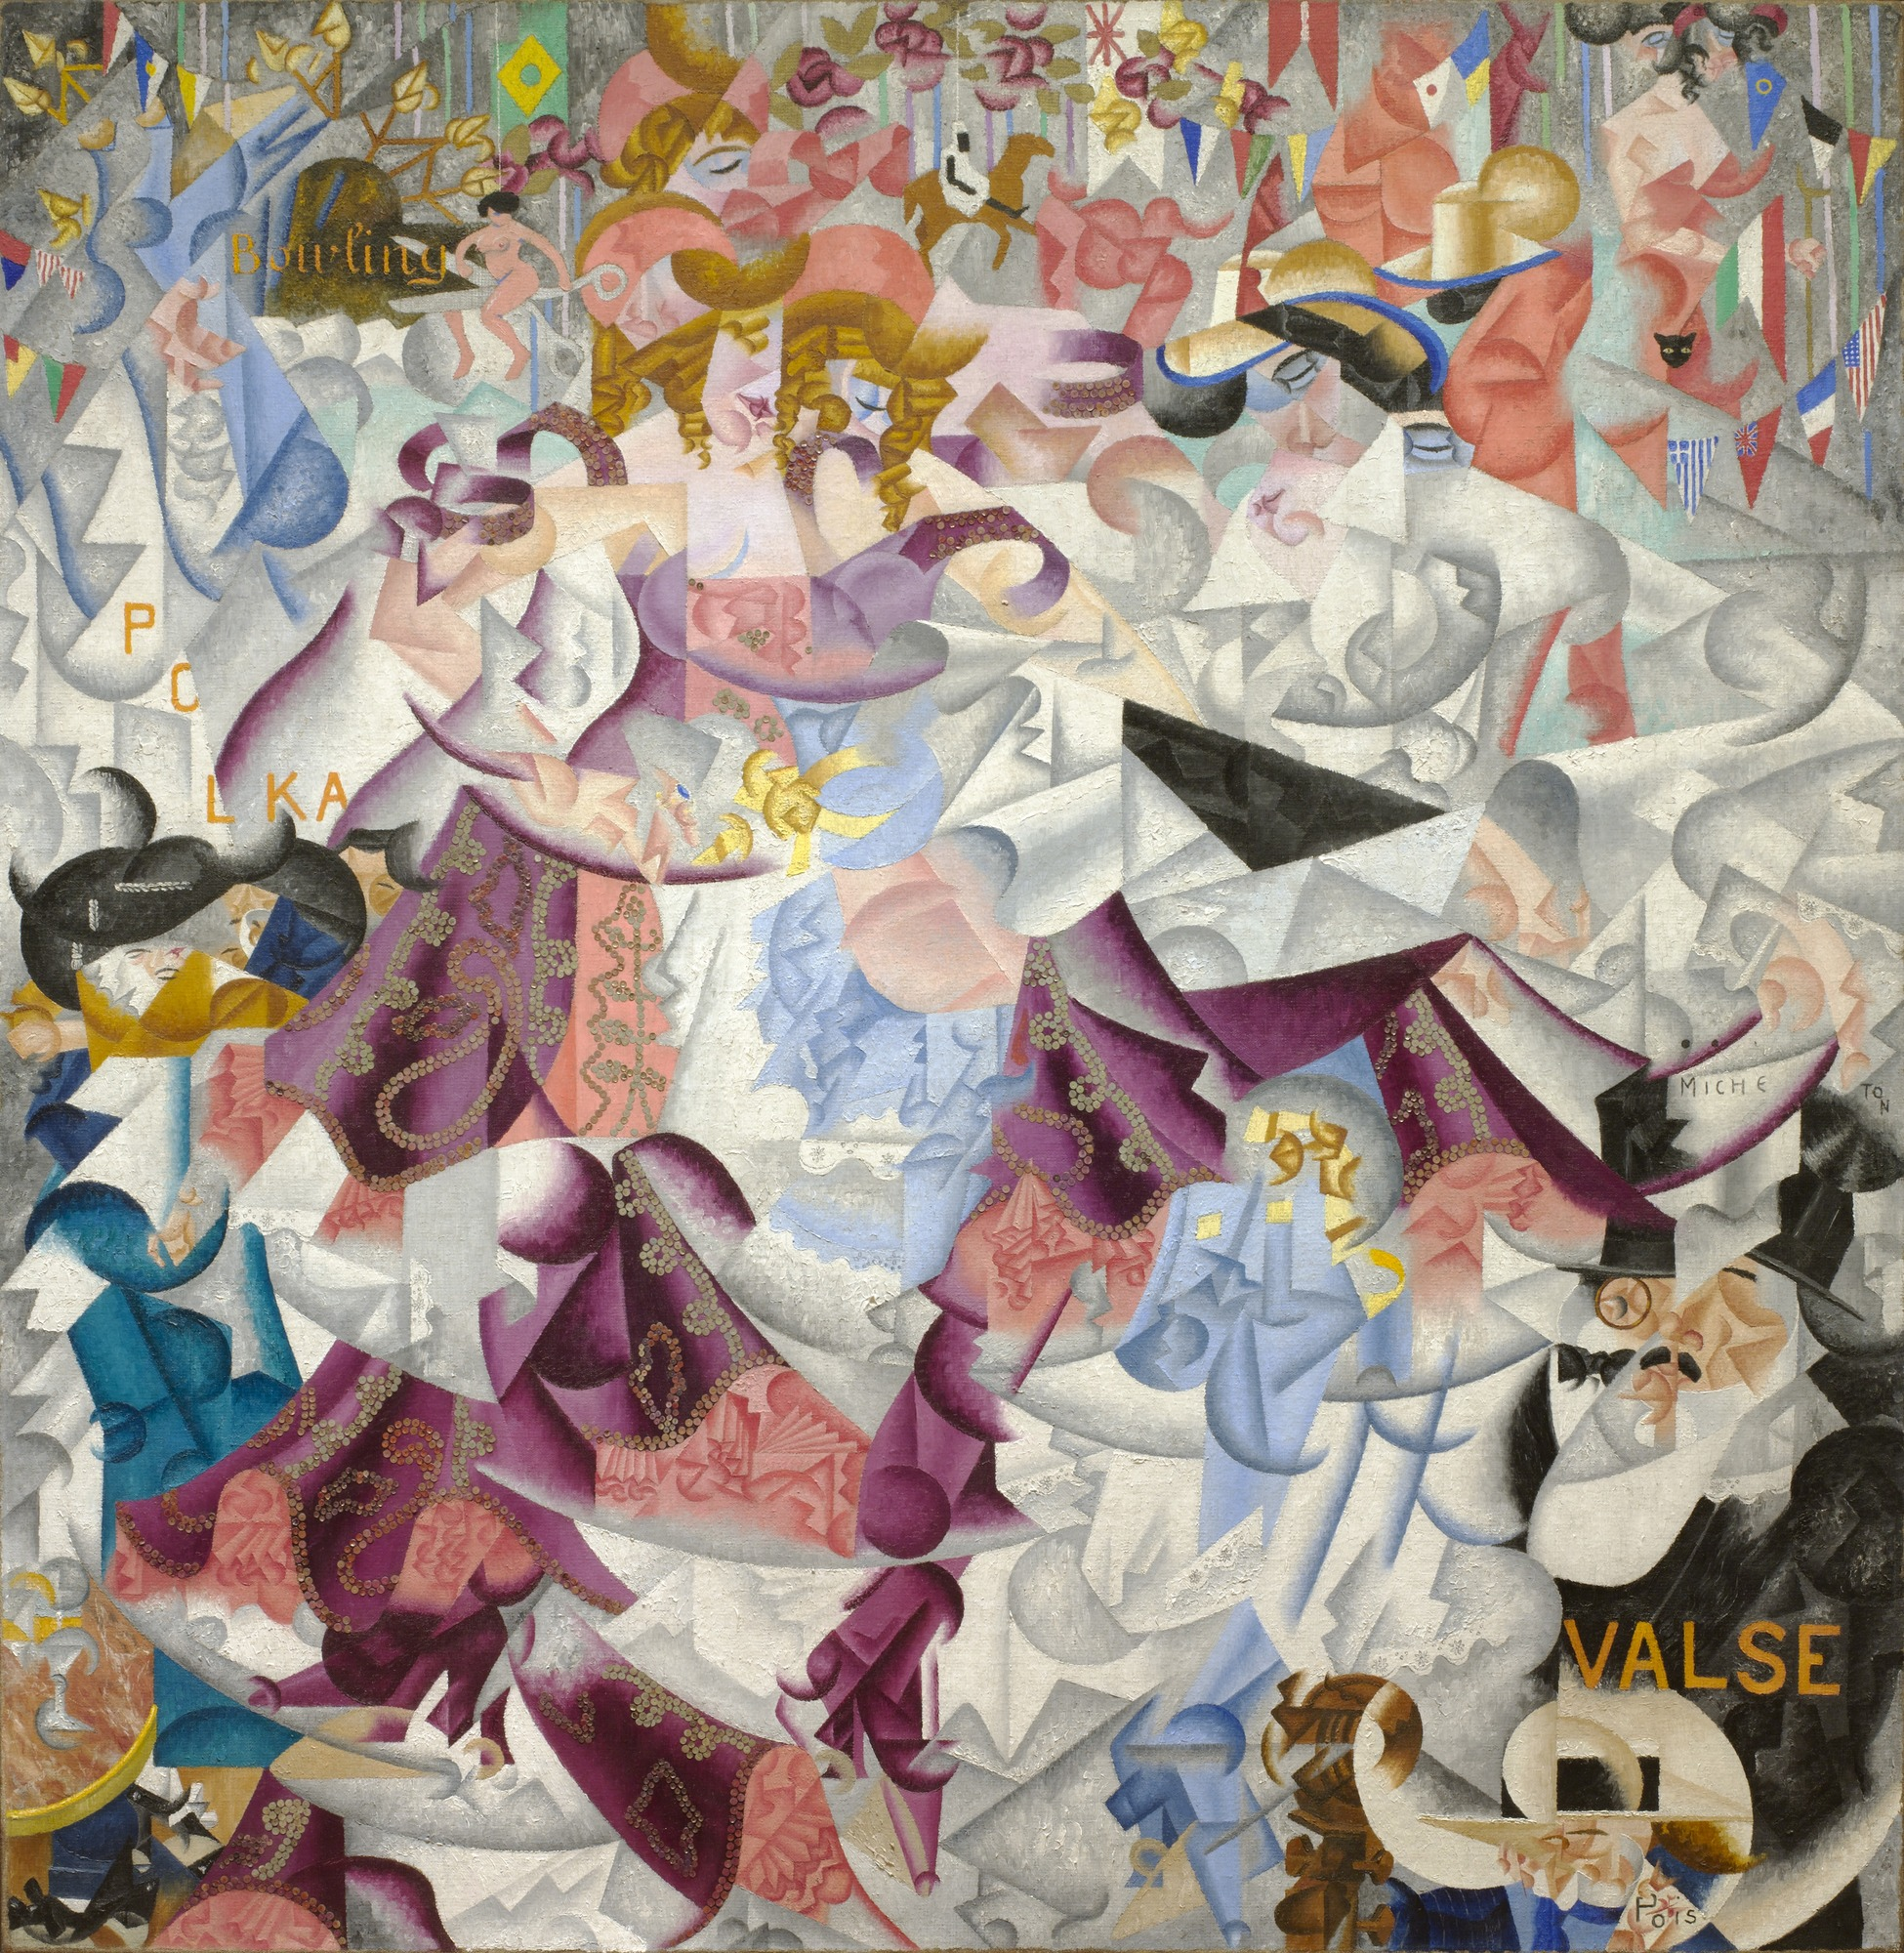 3060472d086d 3. Futurist painter Severini : GINO. Total stranger to me. So what does  this picture try to convey?